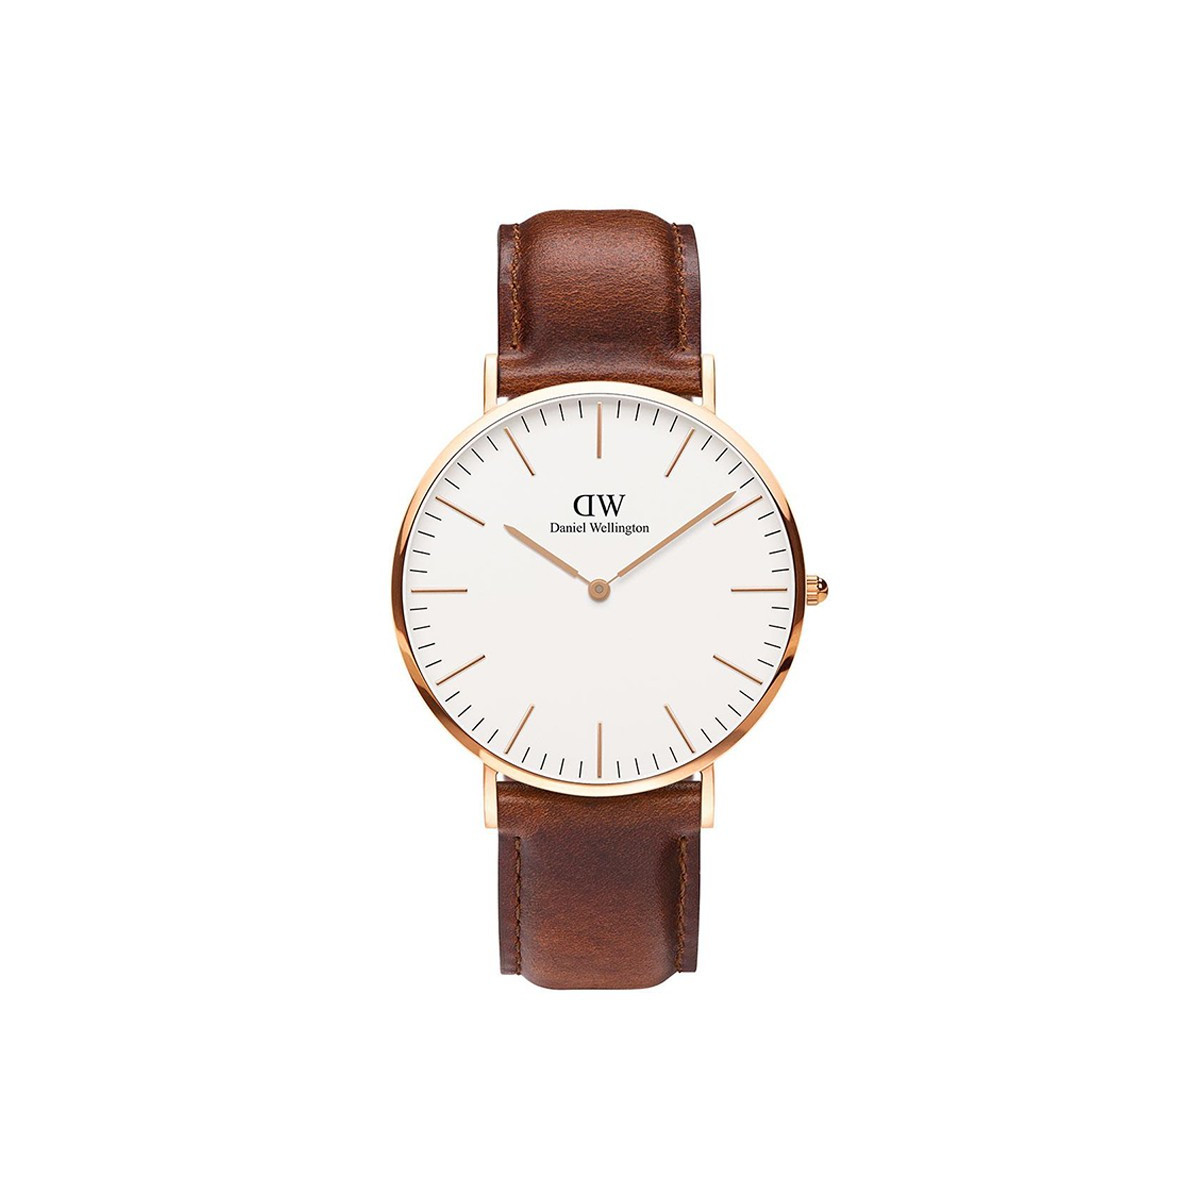 montre daniel wellington st andrew 40 mm 0106dw mes bijoux fr. Black Bedroom Furniture Sets. Home Design Ideas